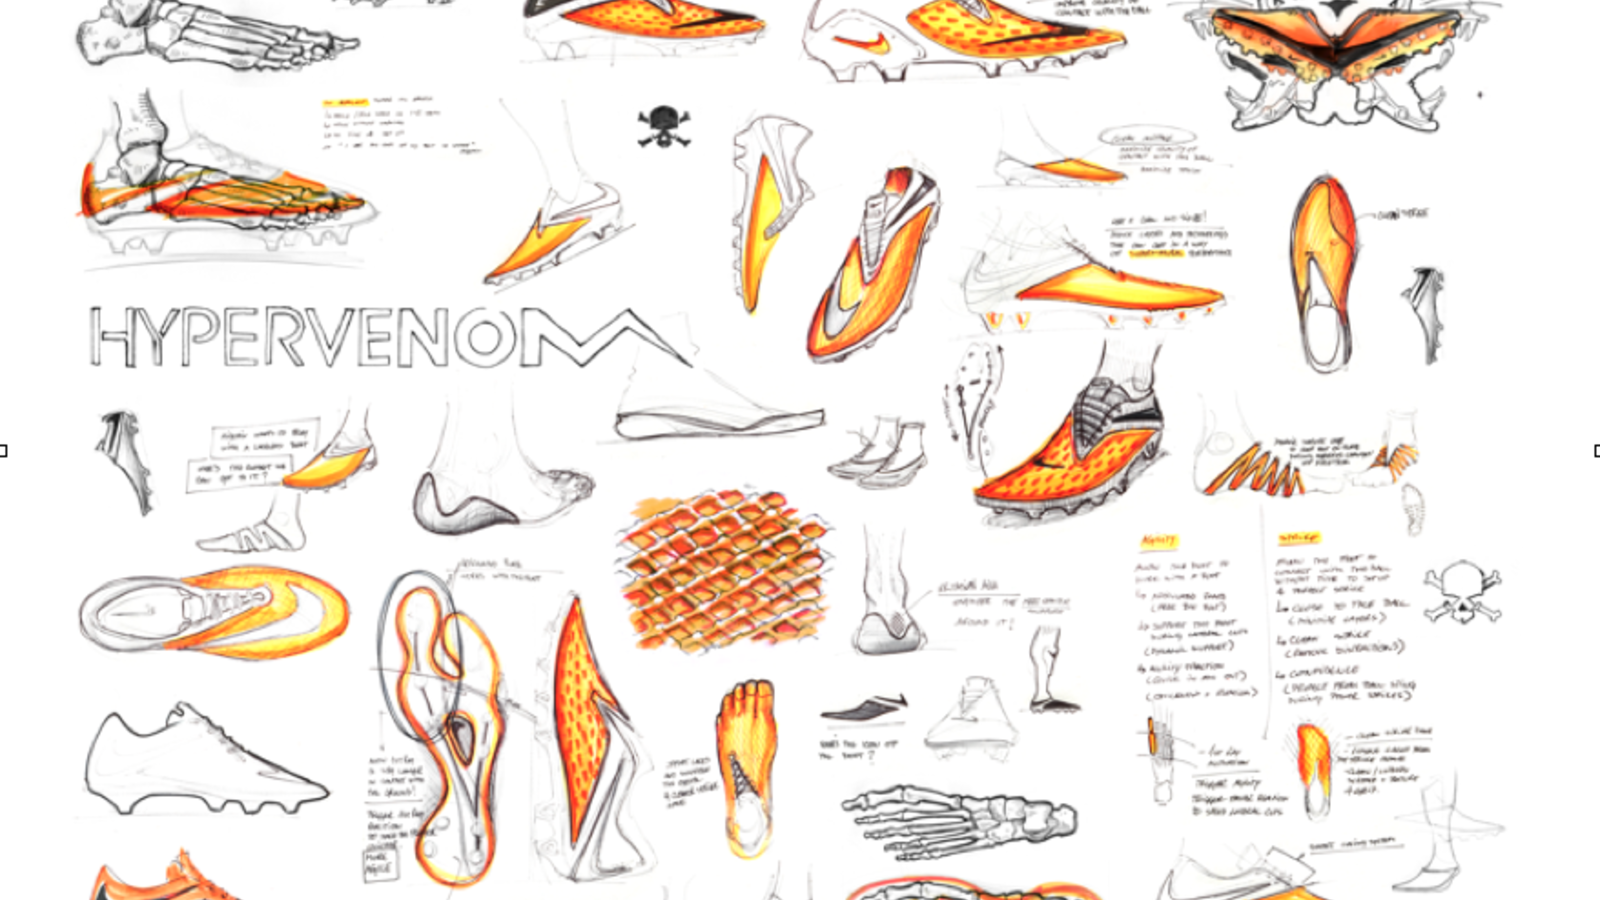 Nike Hypervenom design sketches